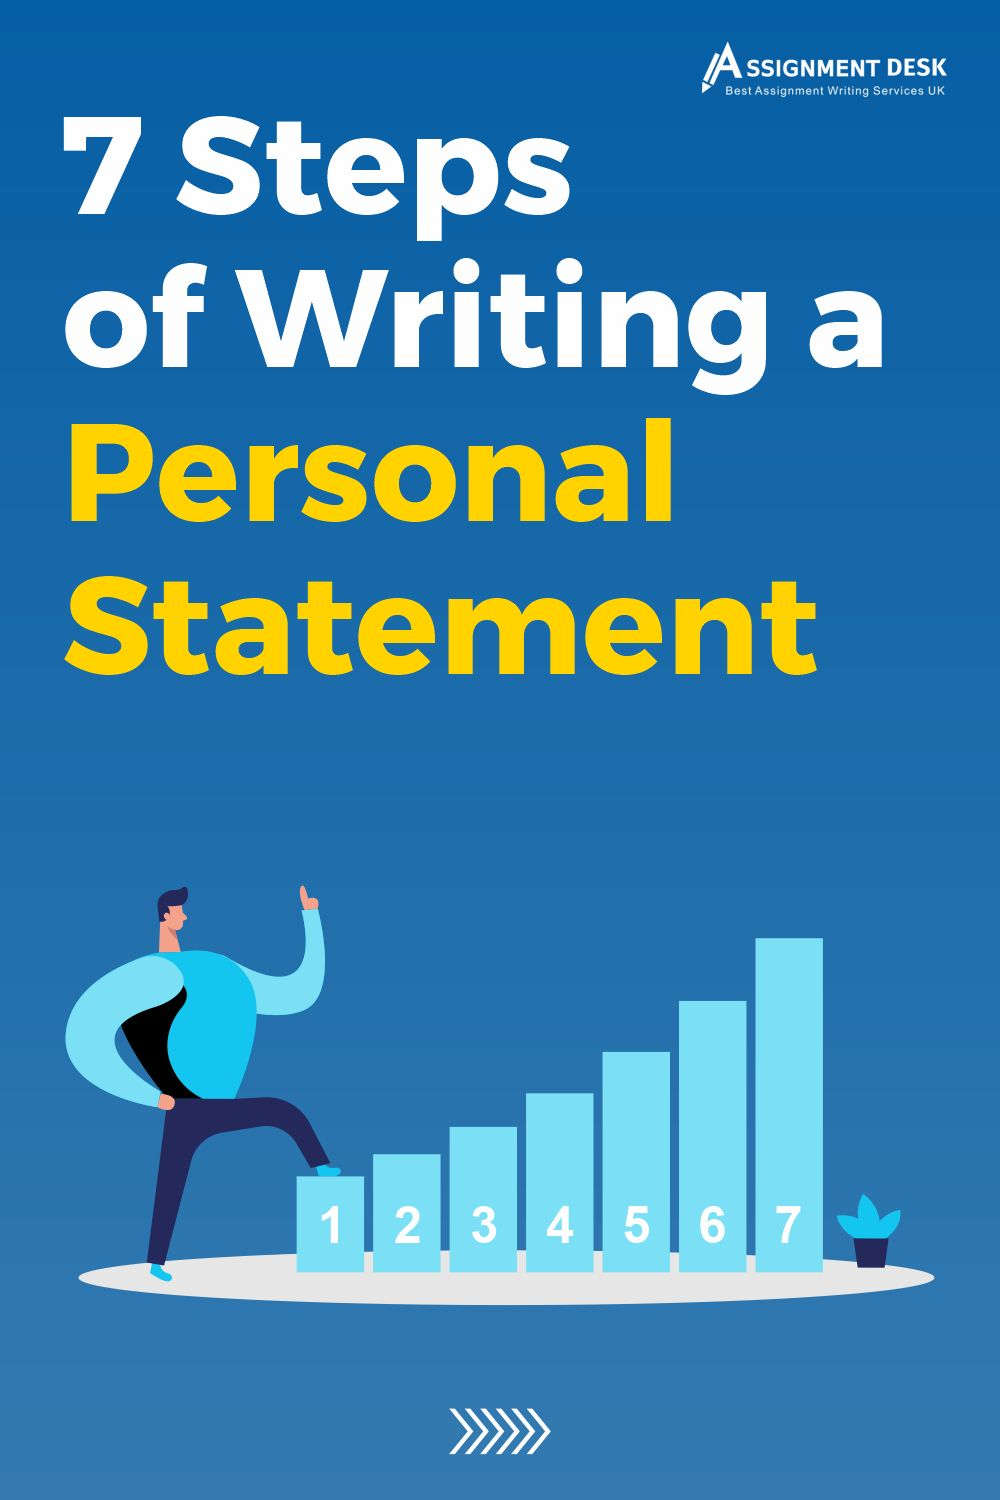 7 Step Of Writing A Personal Statement Assignment Desk In 2021 Essay Steps